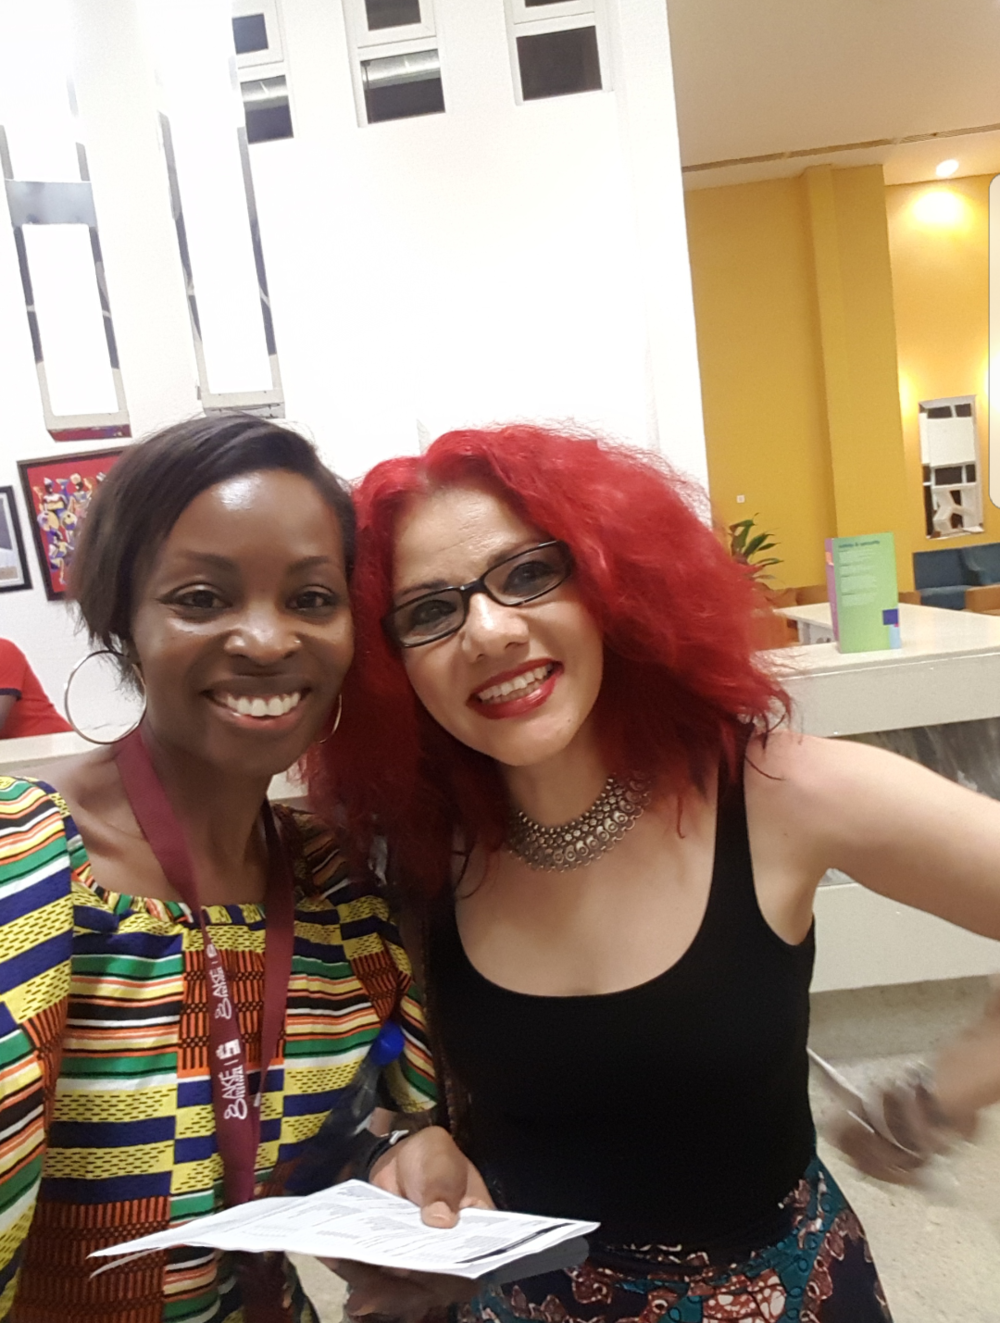 Me with Mona Eltahawy (fierce feminist and Egytpian-American author, journalist and commentator)